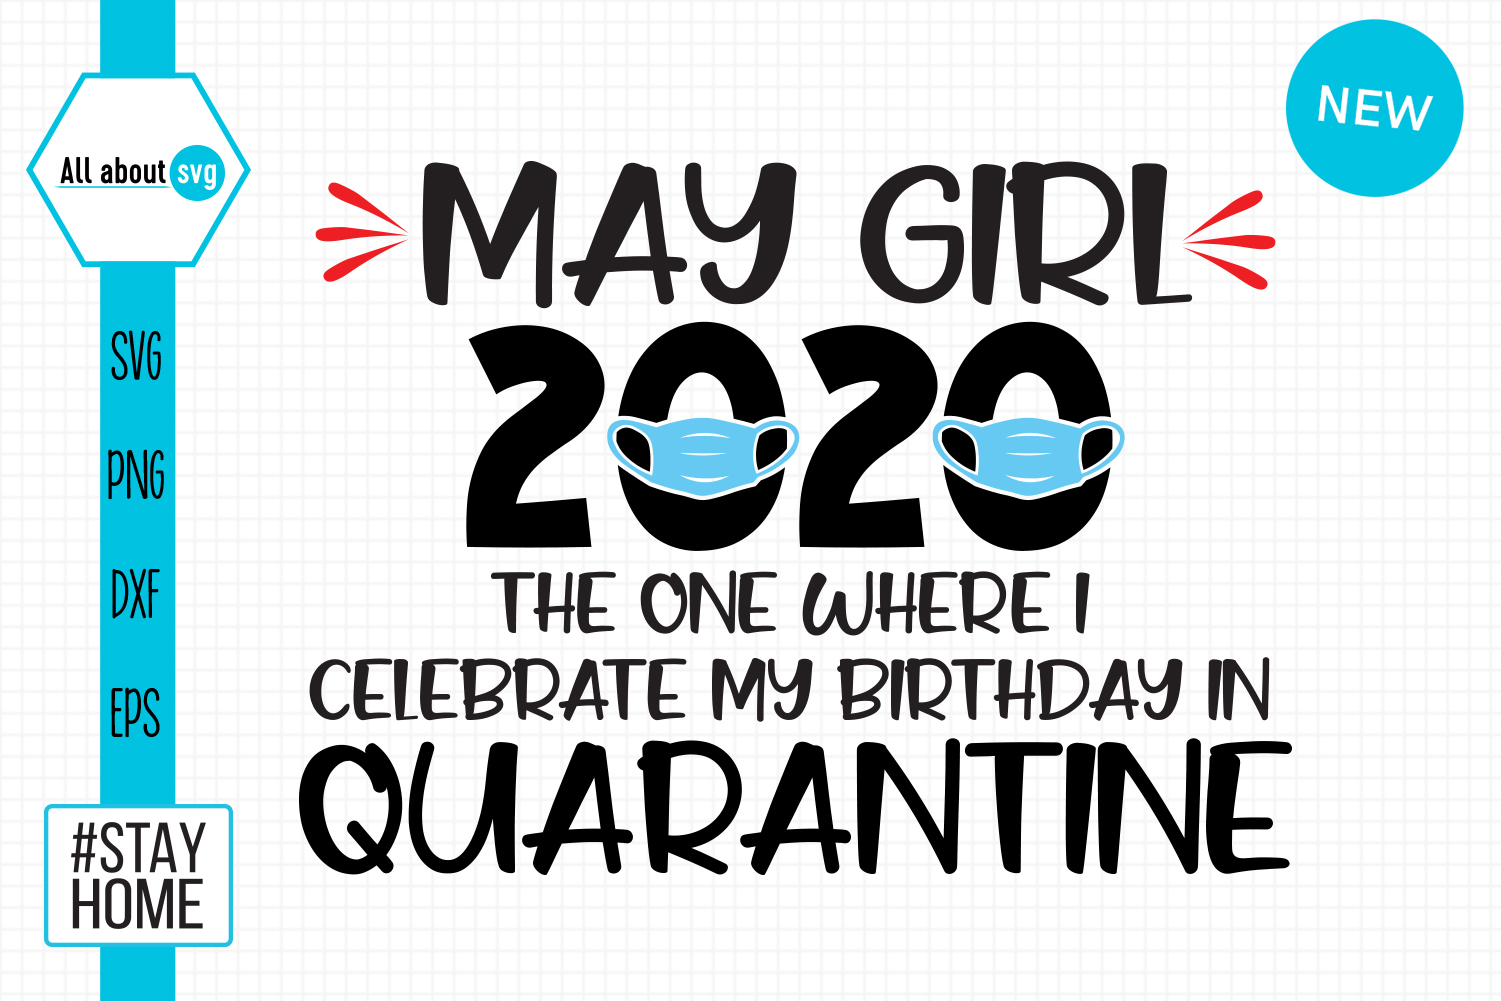 Download Free May Girl 2020 Quarantine Graphic By All About Svg Creative Fabrica for Cricut Explore, Silhouette and other cutting machines.